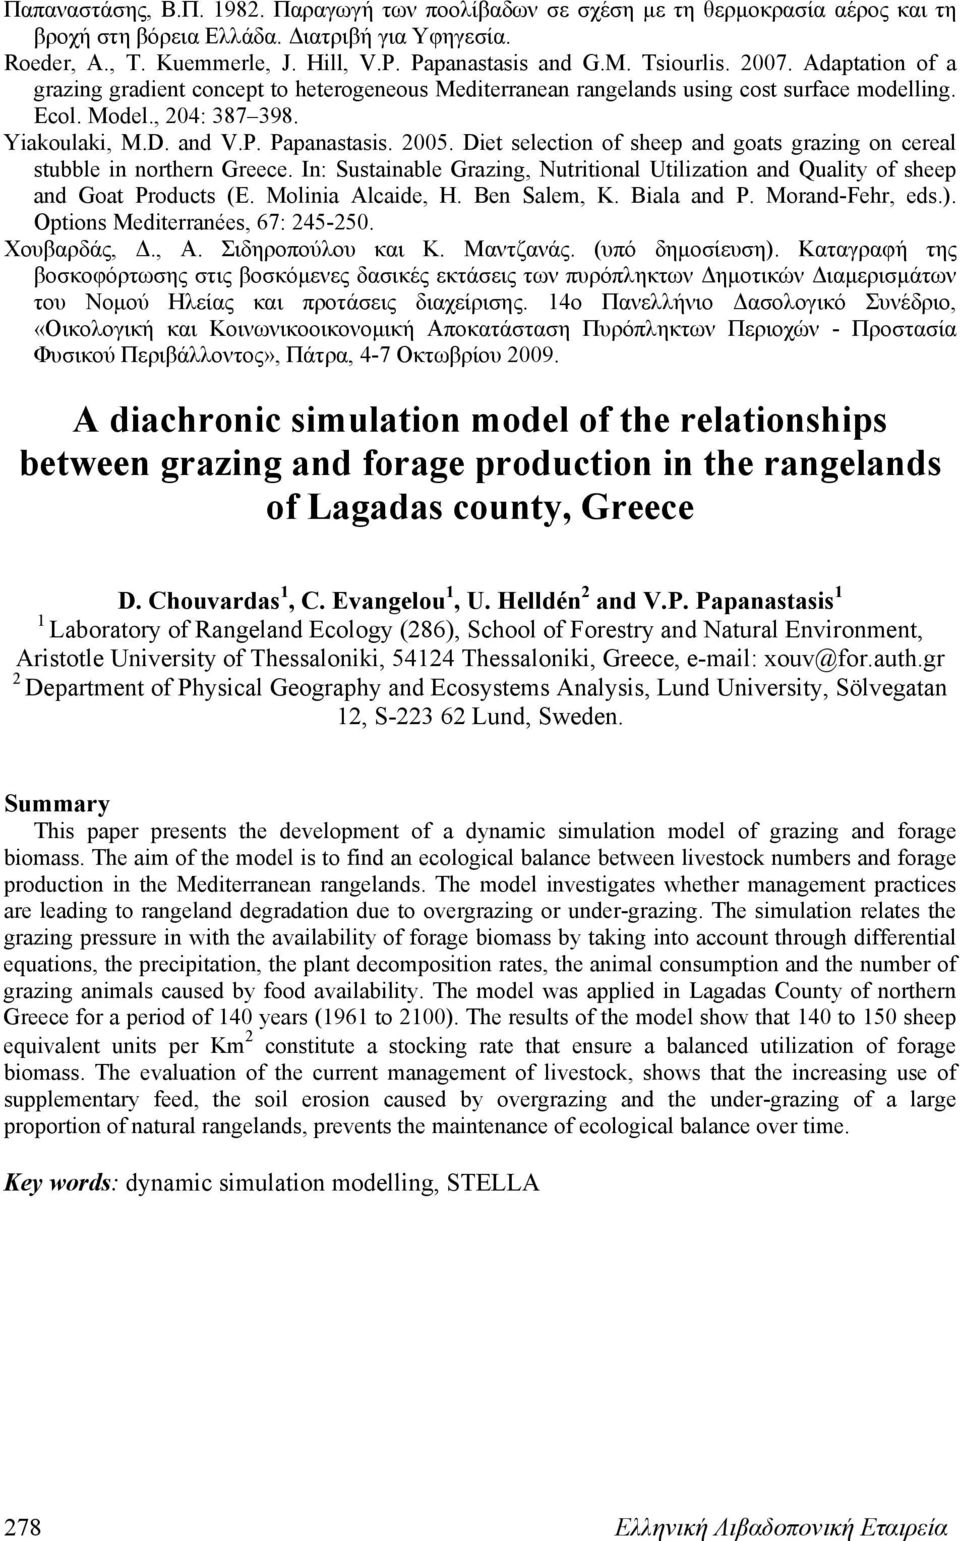 2005. Diet selection of sheep and goats grazing on cereal stubble in northern Greece. In: Sustainable Grazing, Nutritional Utilization and Quality of sheep and Goat Products (E. Molinia Alcaide, H.